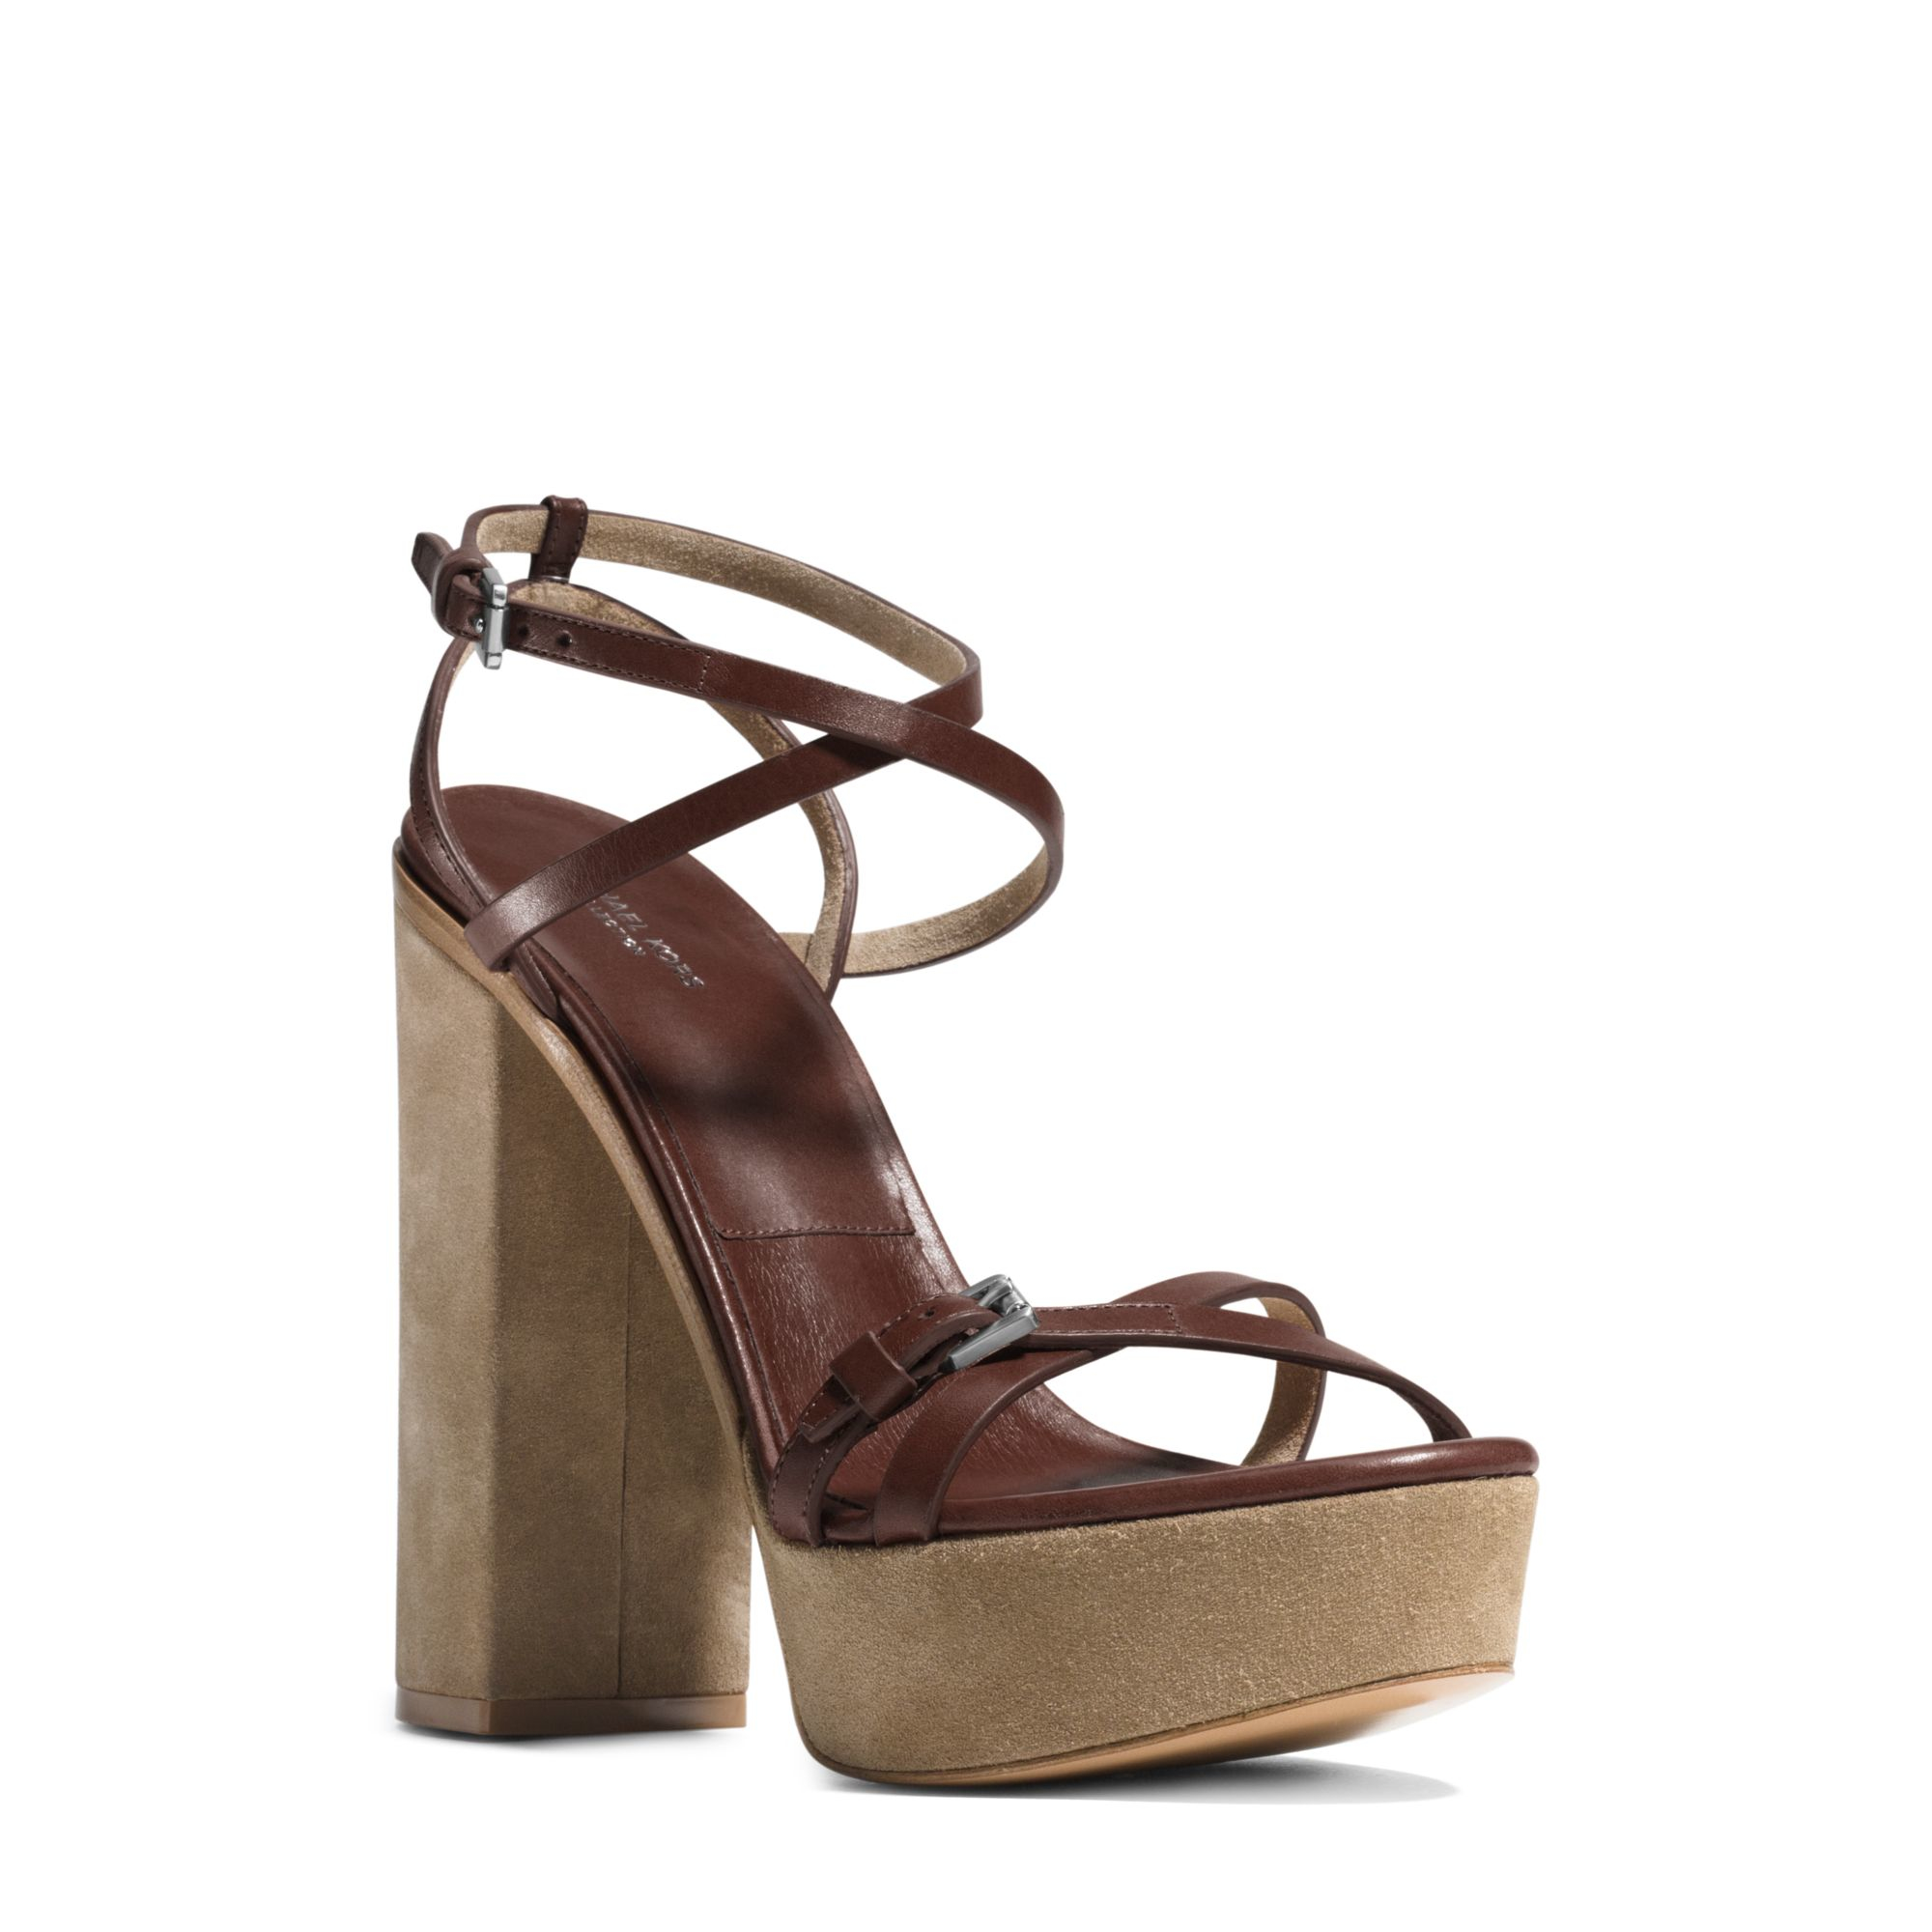 7c65c86eb4cd Lyst - Michael Kors Alma Runway Leather And Suede Sandal in Brown